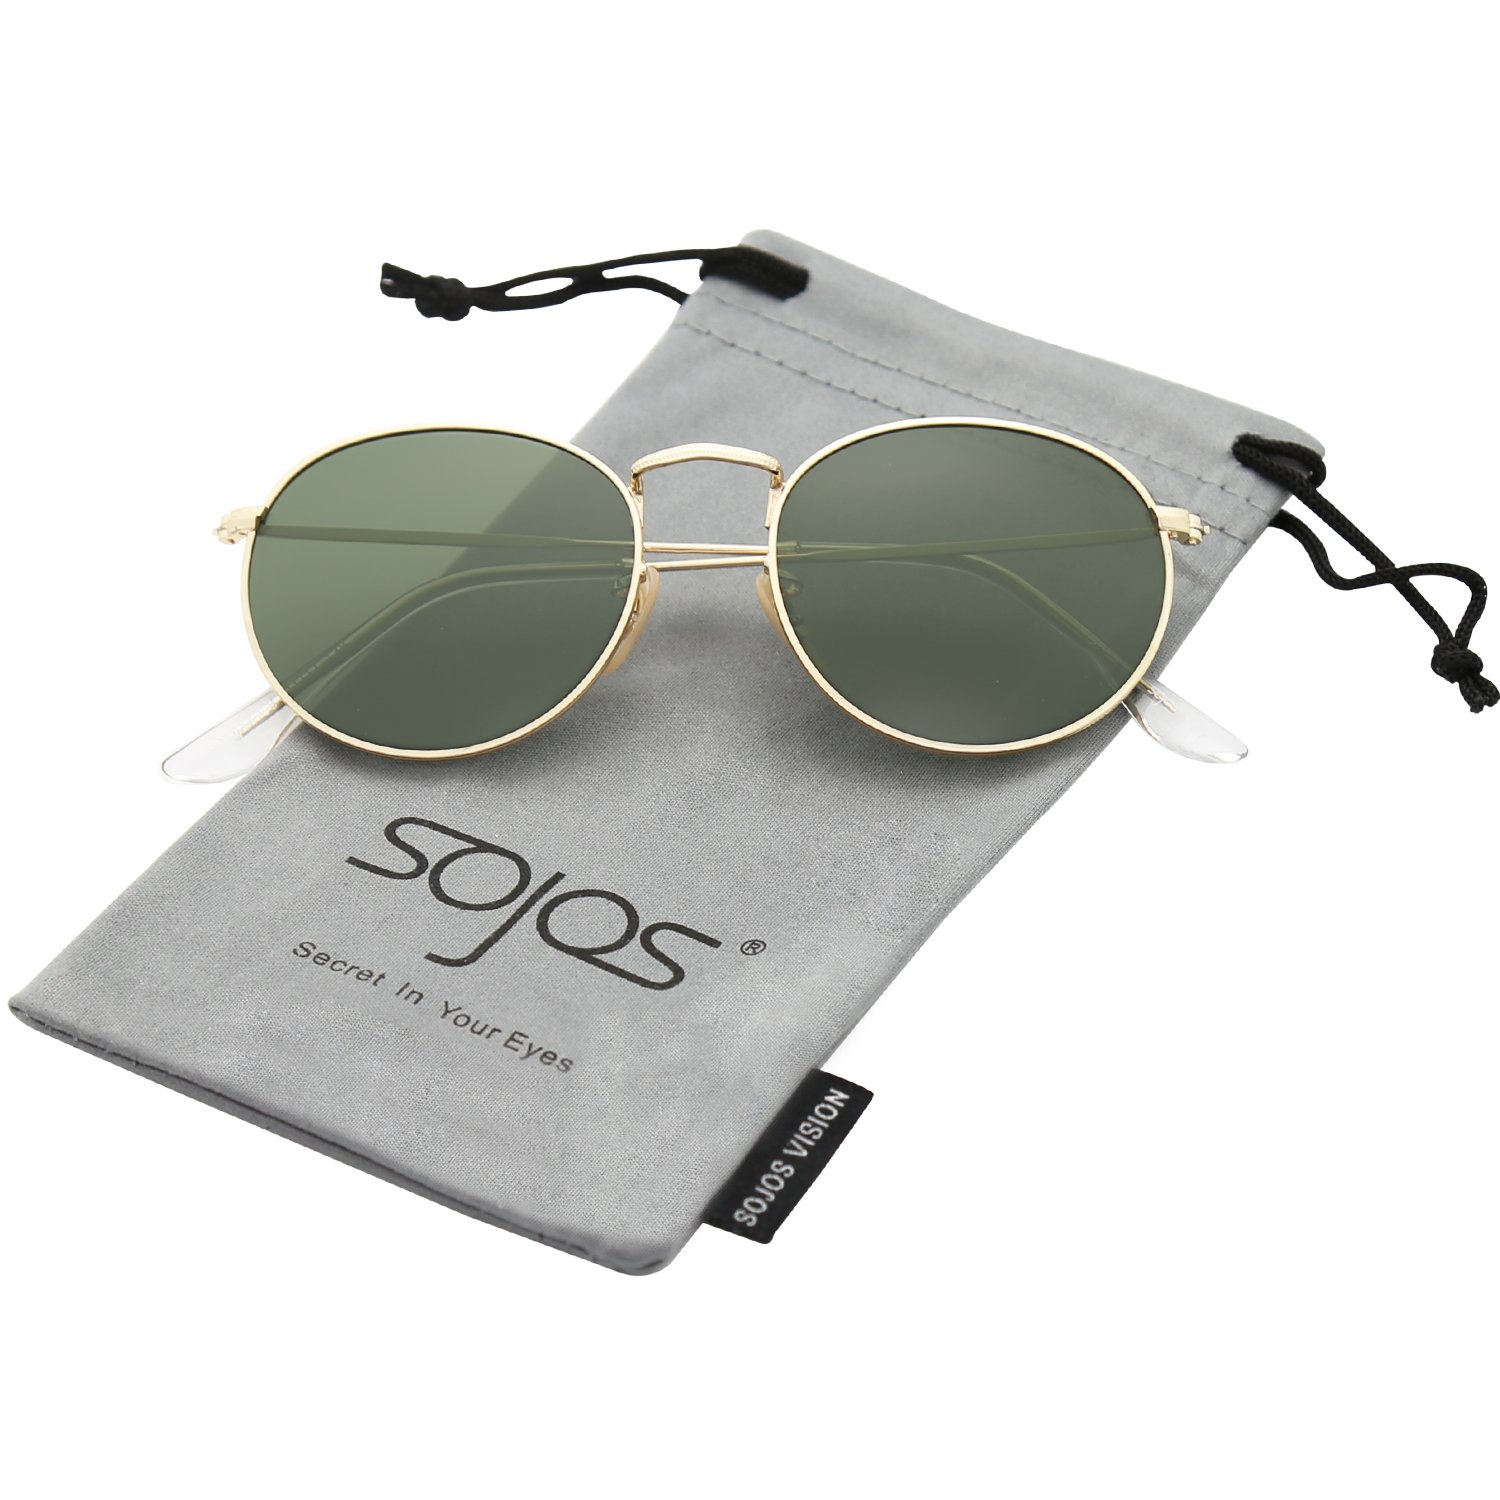 30405c4a9c SOJOS Small Round Polarized Sunglasses Mirrored Lens Unisex Glasses ...